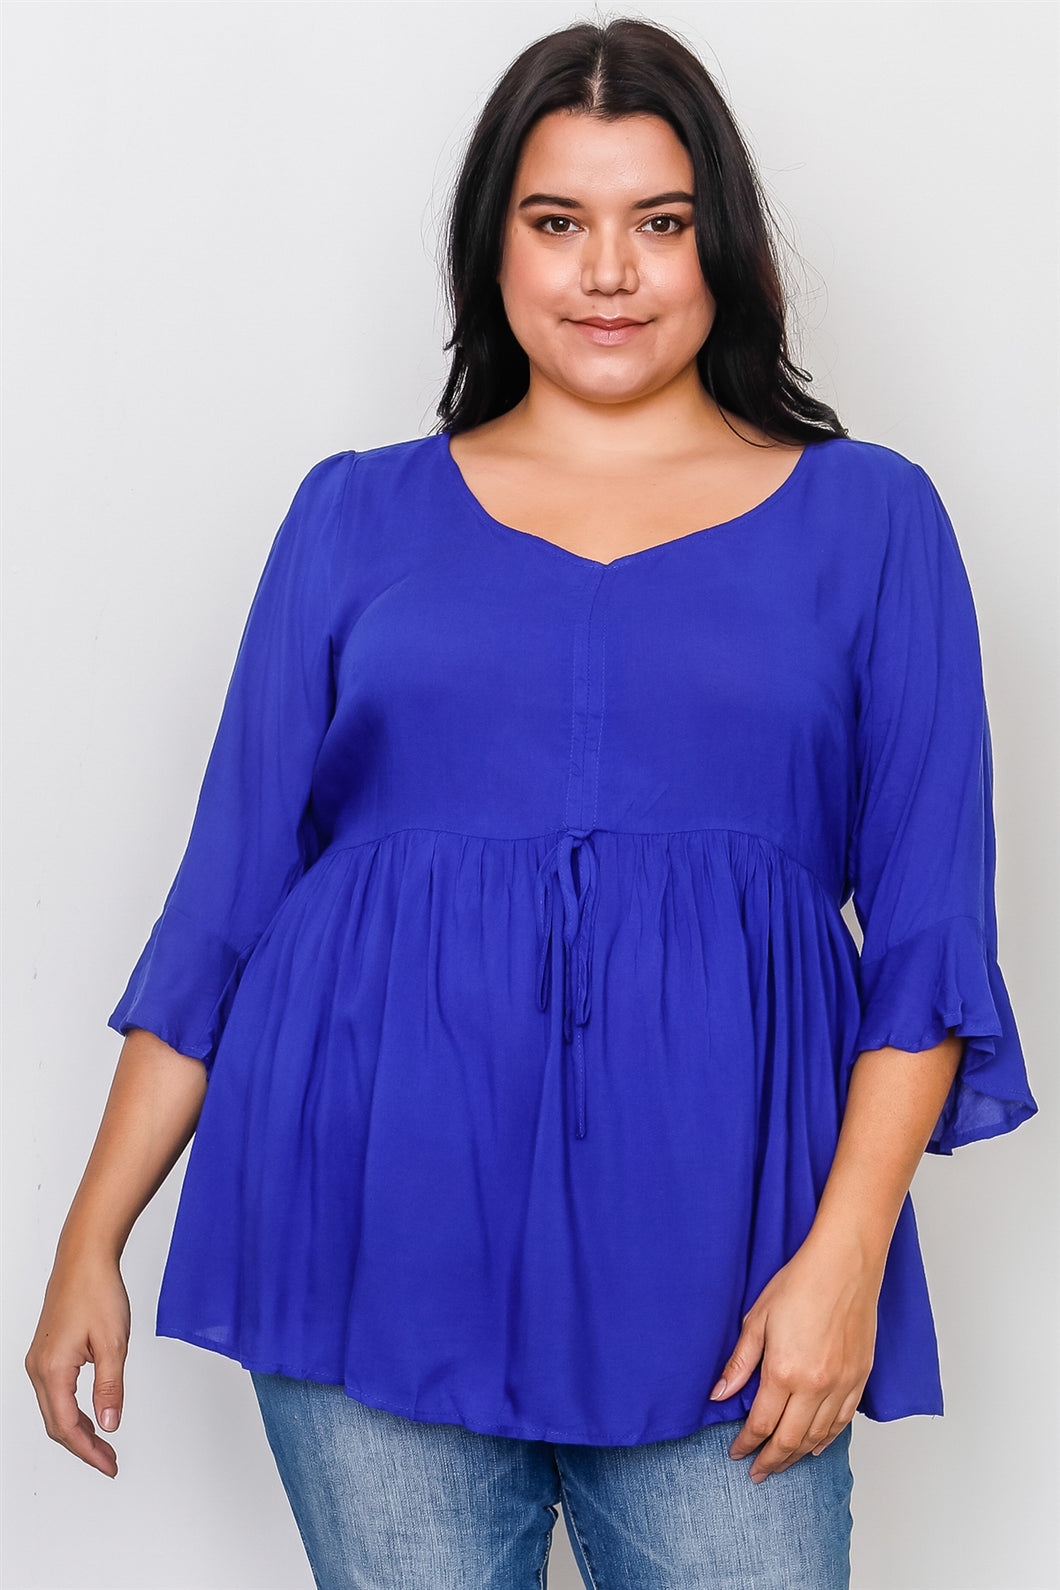 Plus Size Front Drawstring Baby Doll Top Pretty little thing-Don Dapper Store